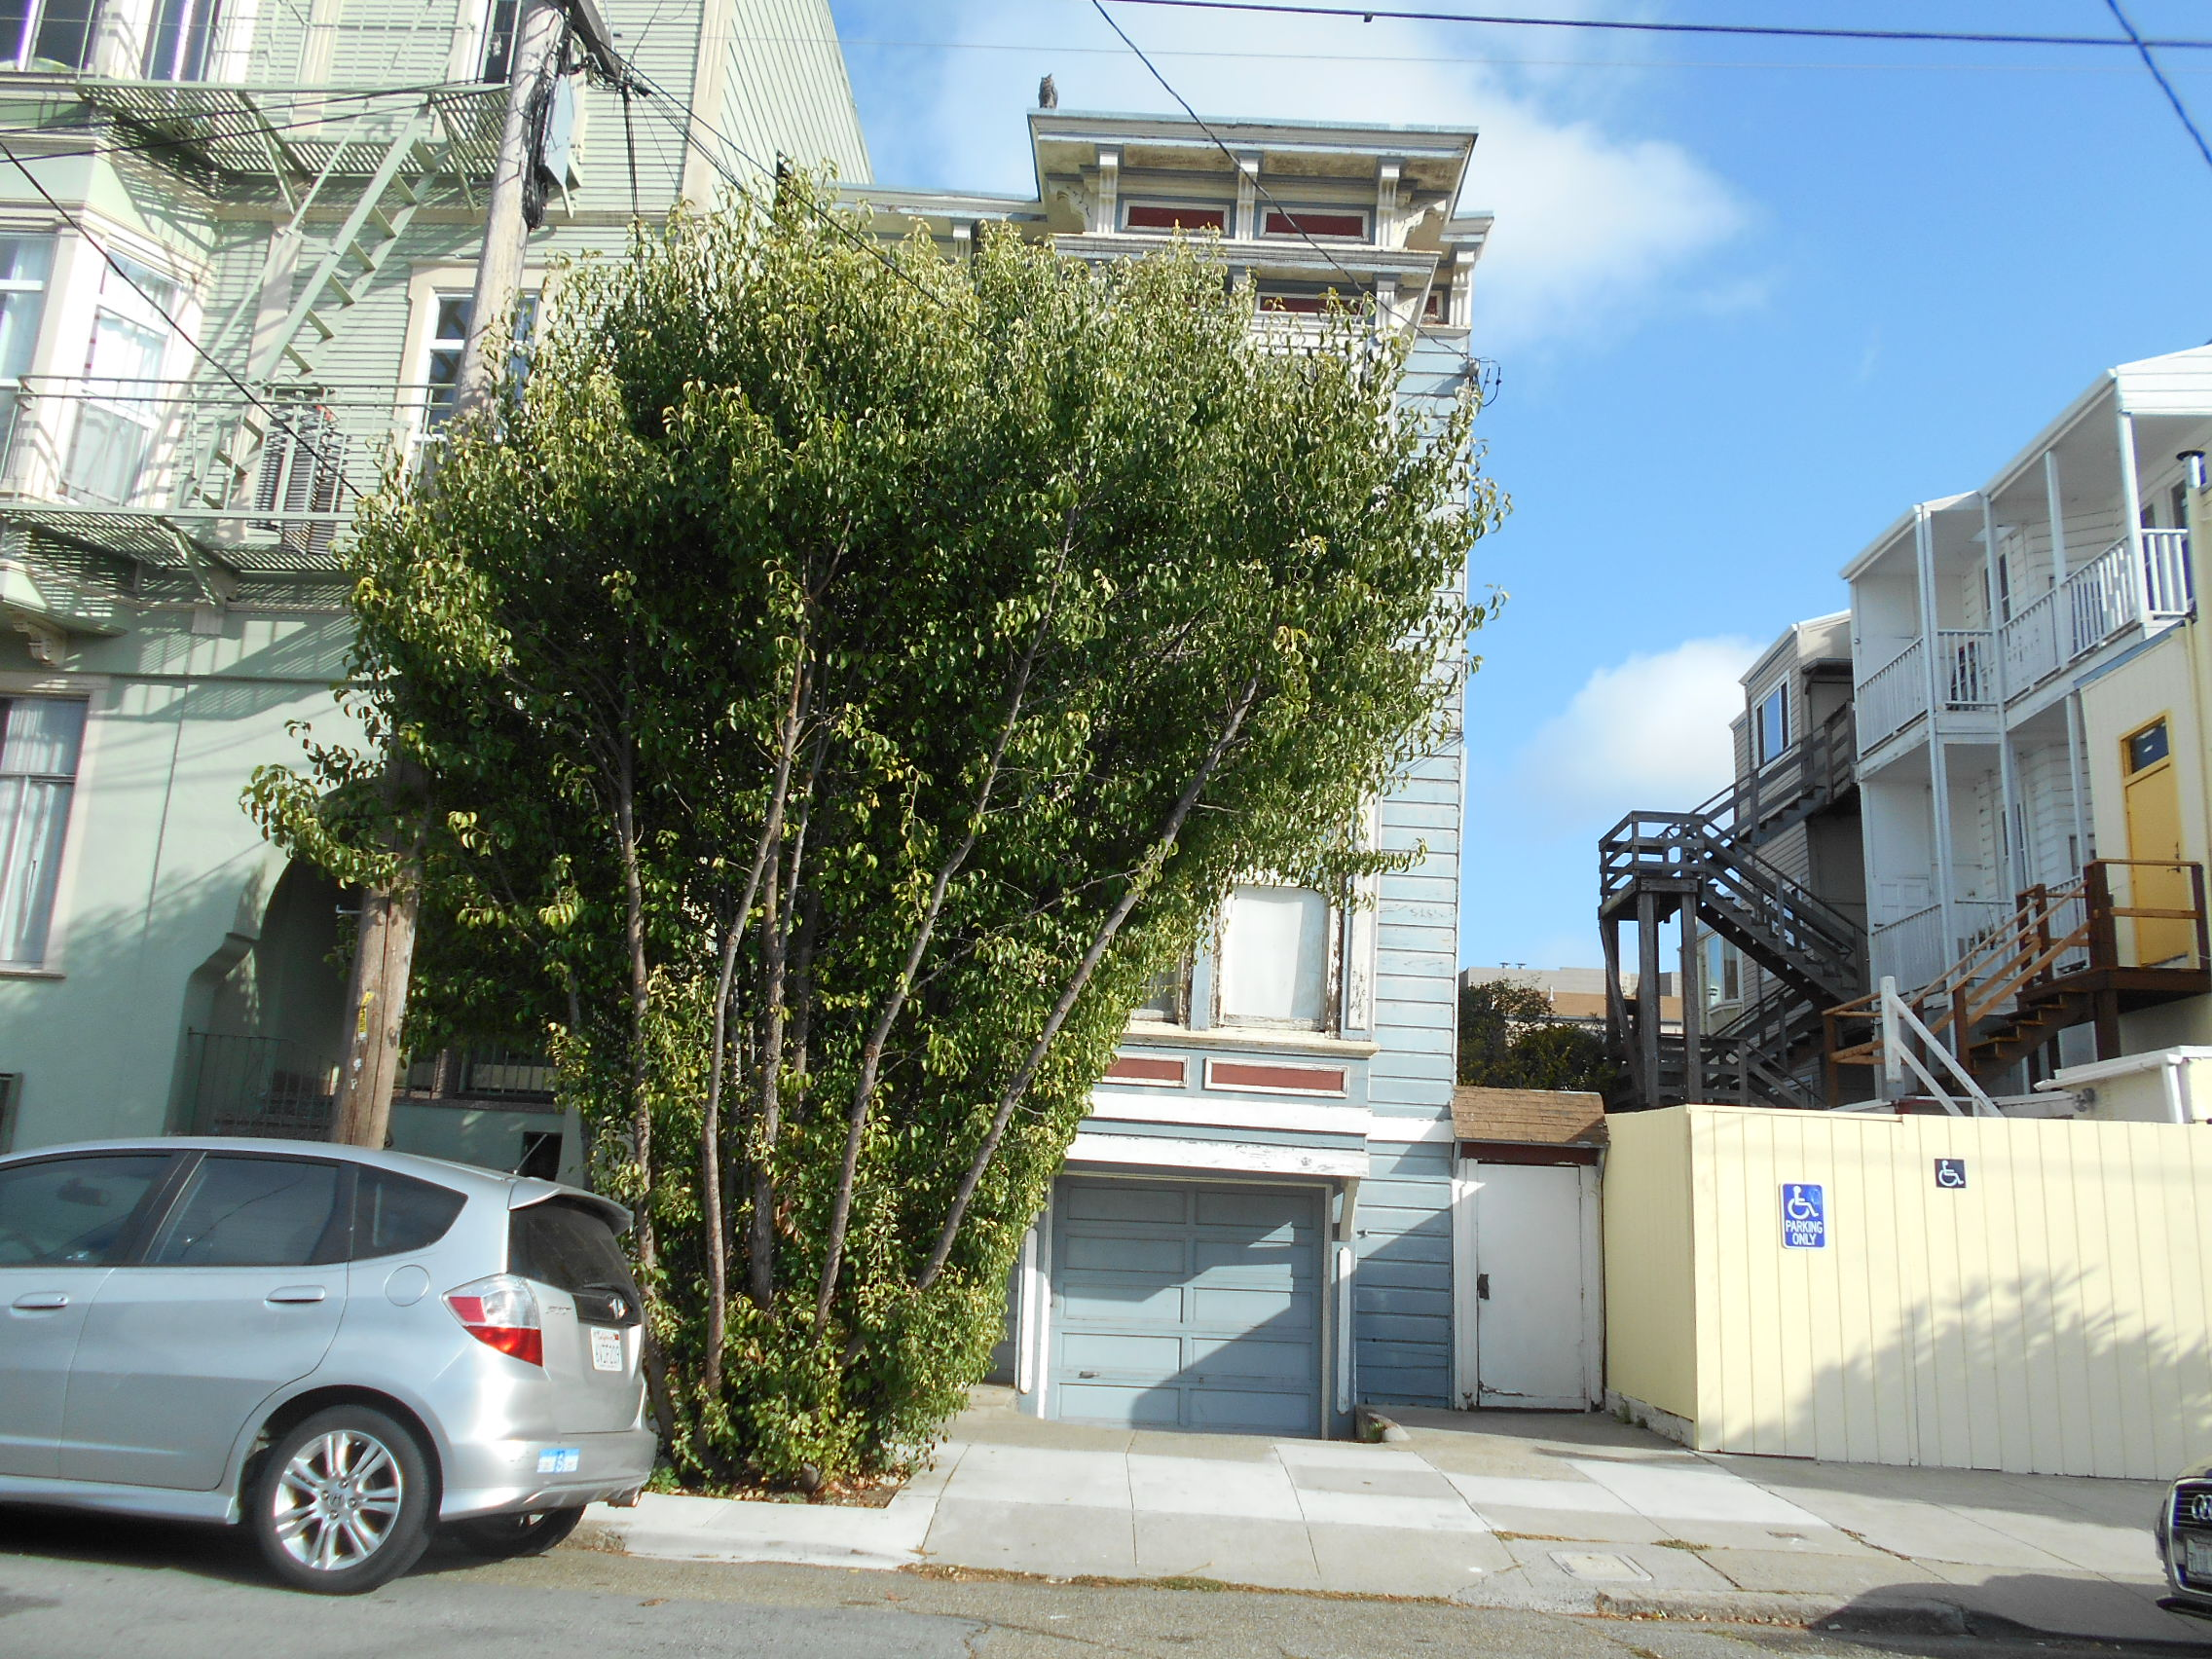 320 Hermann St, San Francisco, CA 94117